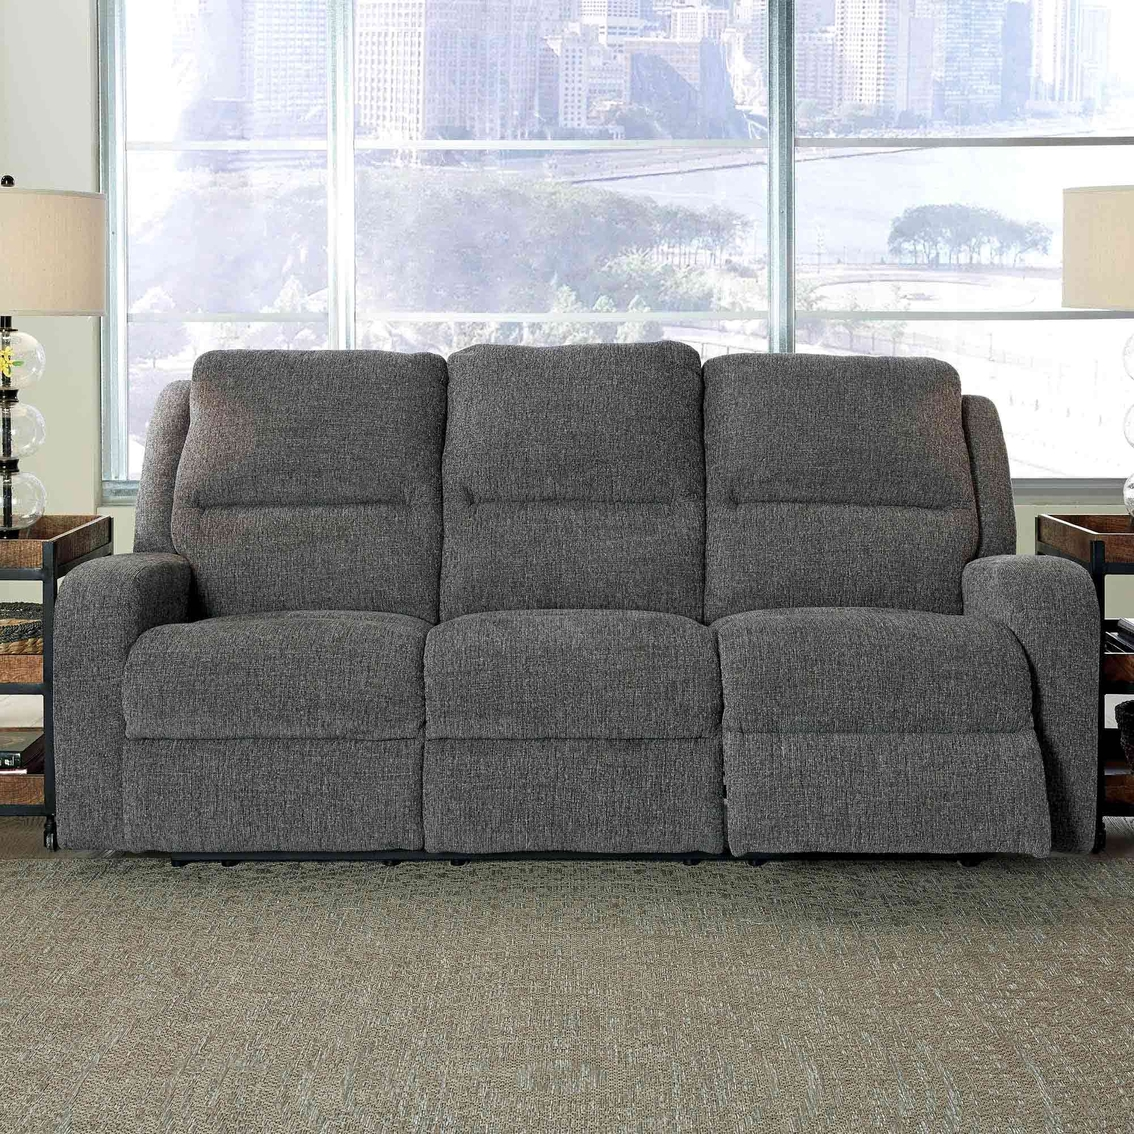 Super Ashley Krismen Power Reclining Sofa With Power Adjusting Evergreenethics Interior Chair Design Evergreenethicsorg